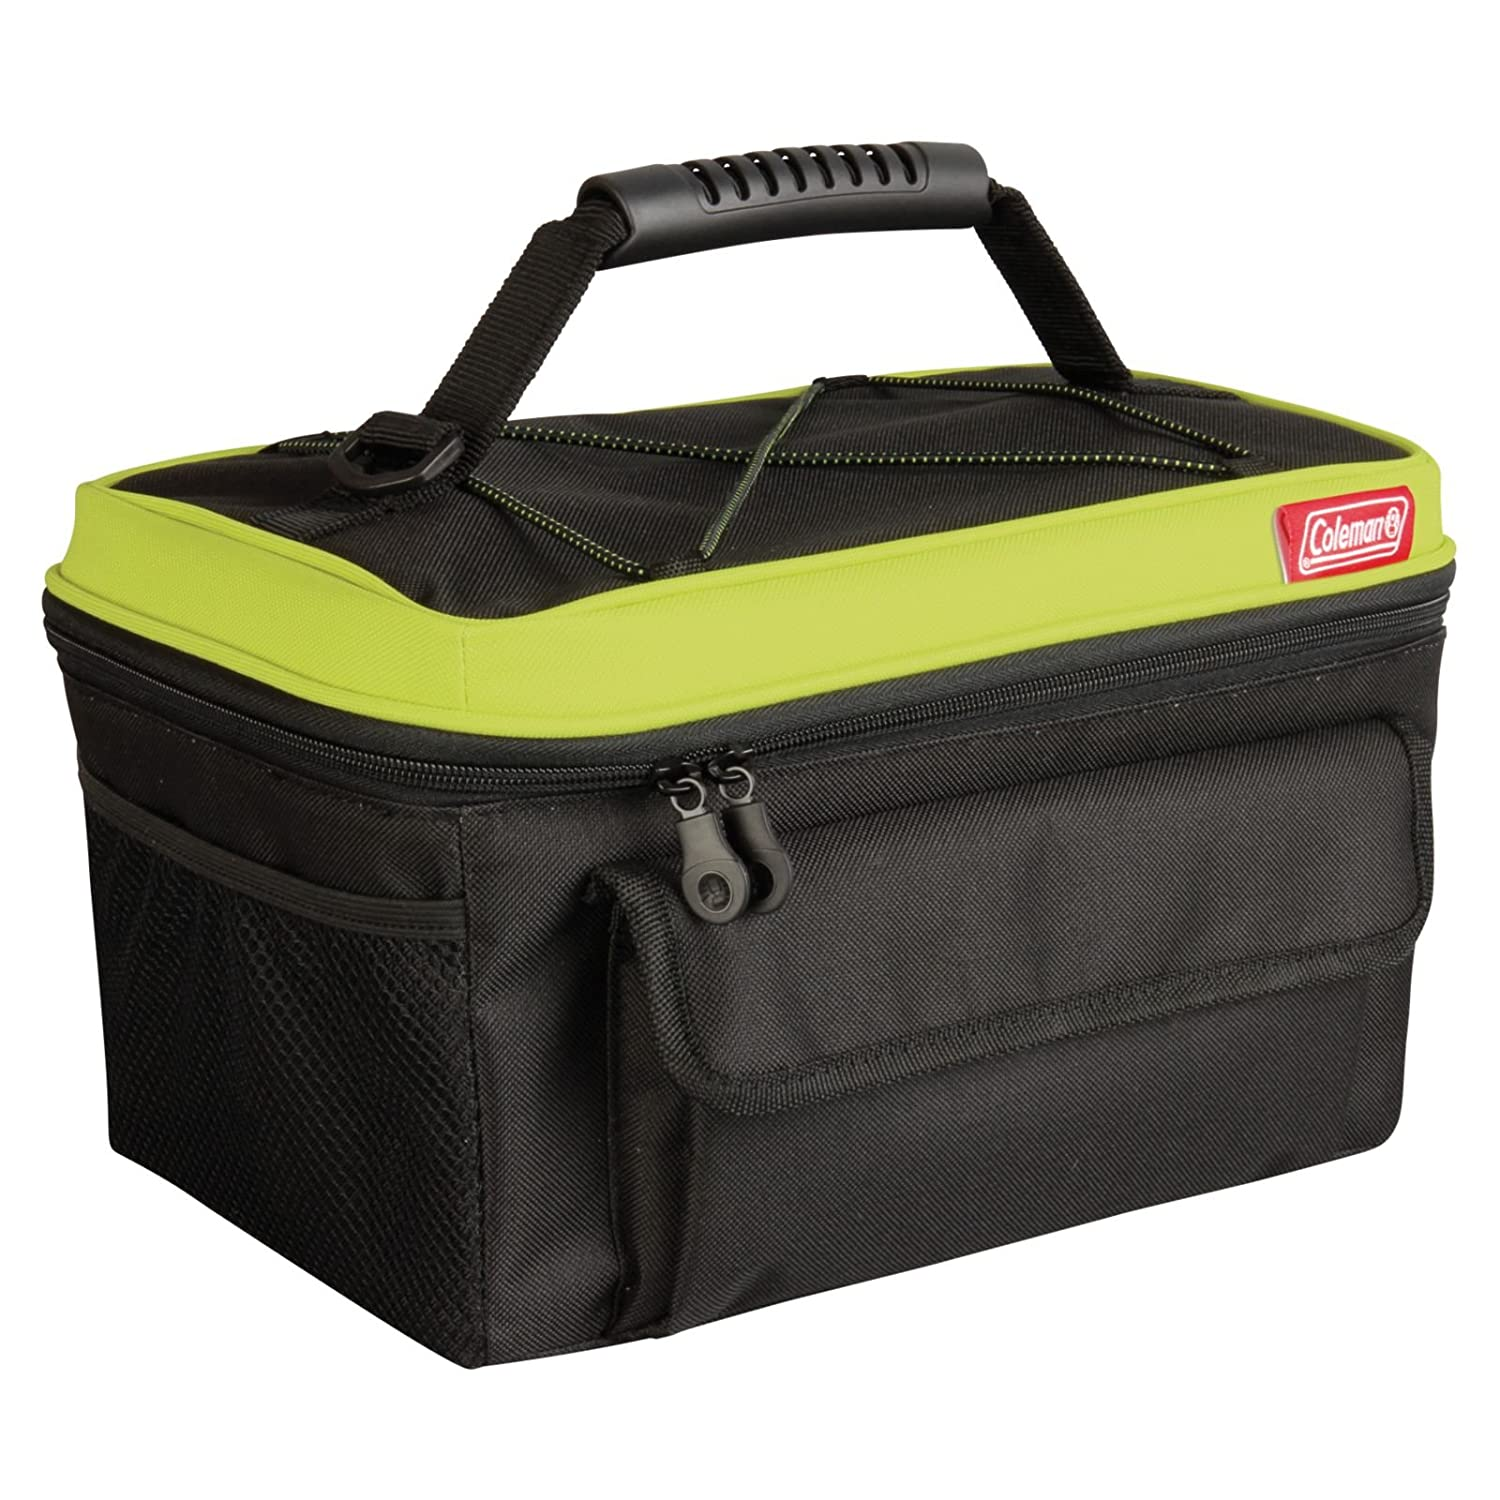 2000013745 Coleman C006 Soft 14 Can Man Cooler The Coleman Company Inc